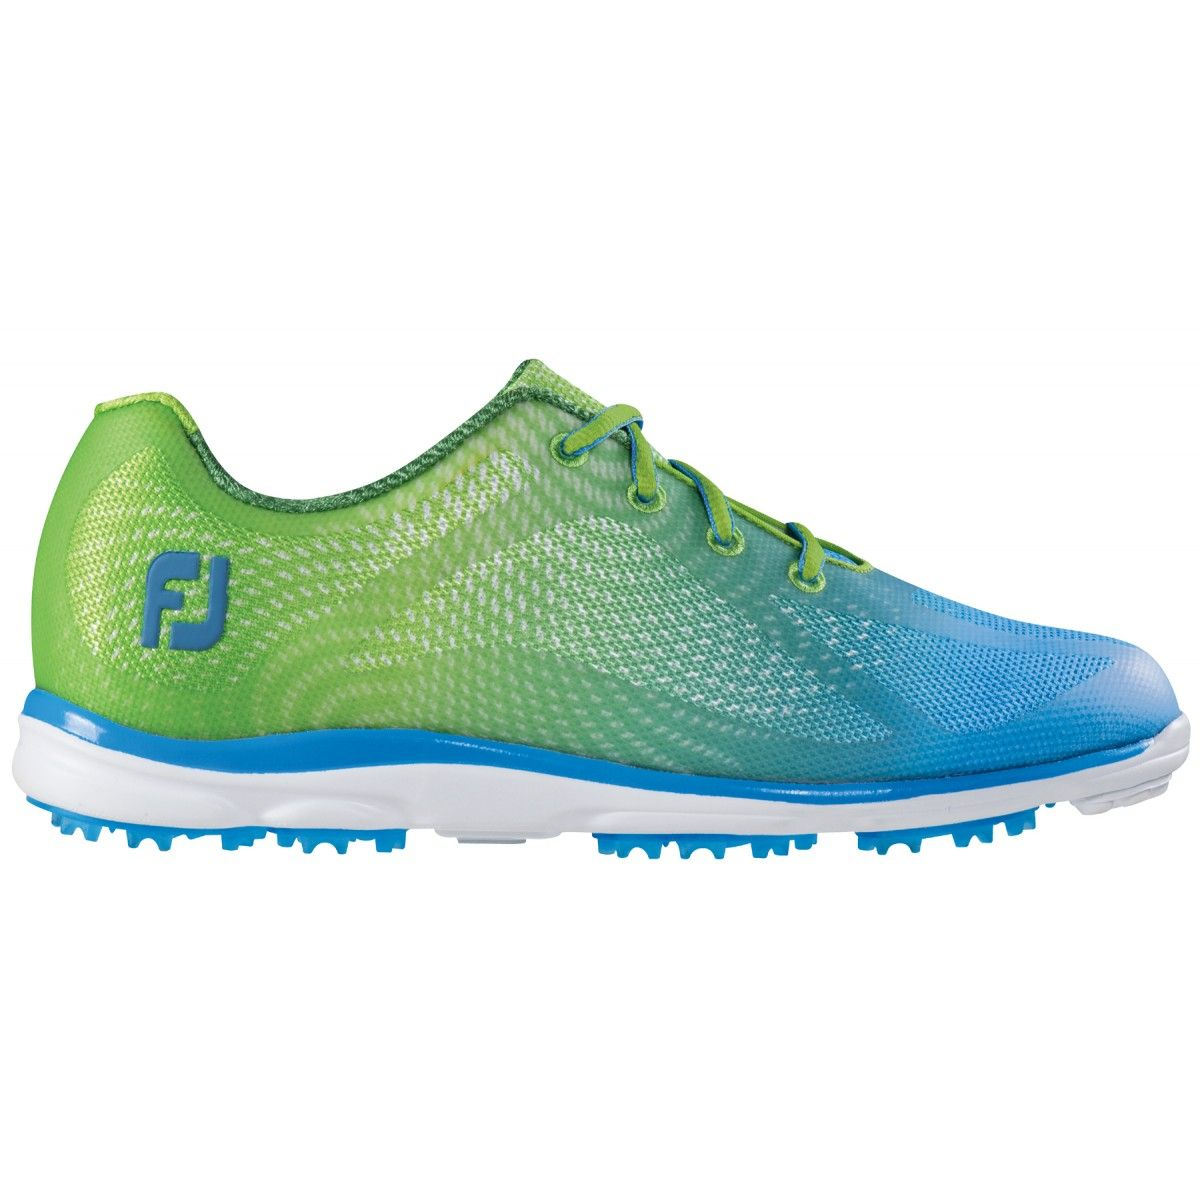 Footjoy emPower Golf Shoes Lime Green 98001 | Womens golf